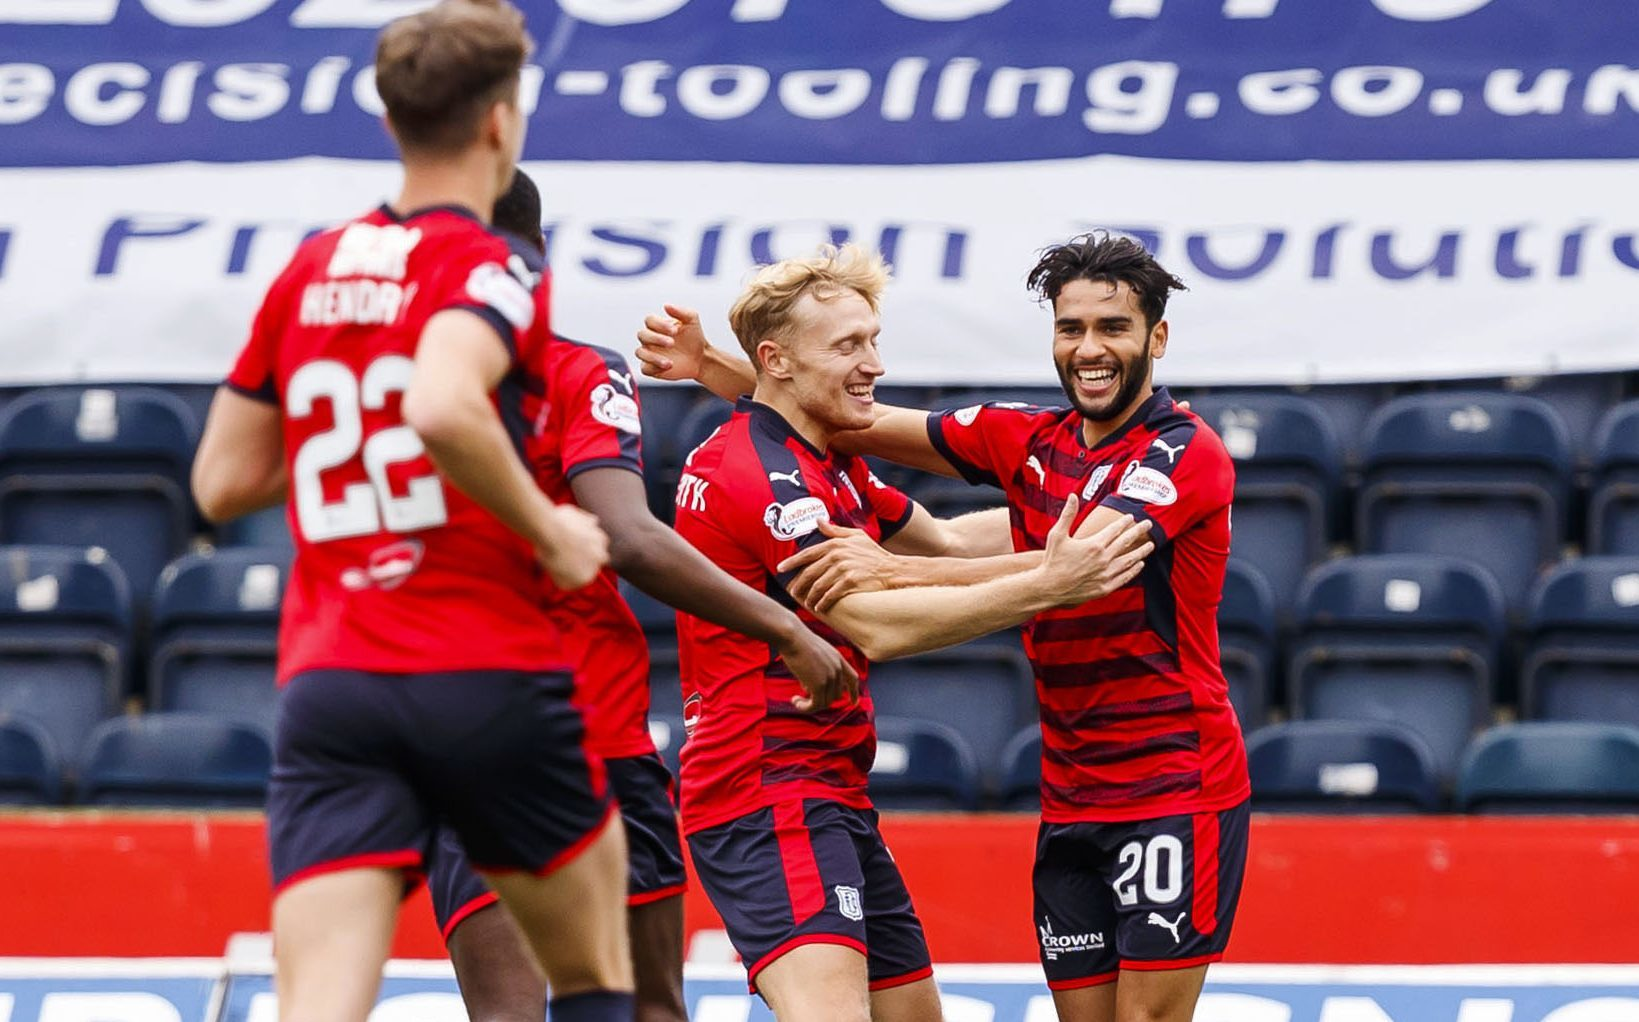 Dundee's Fassial El Bakhtaoui celebrates his goal.